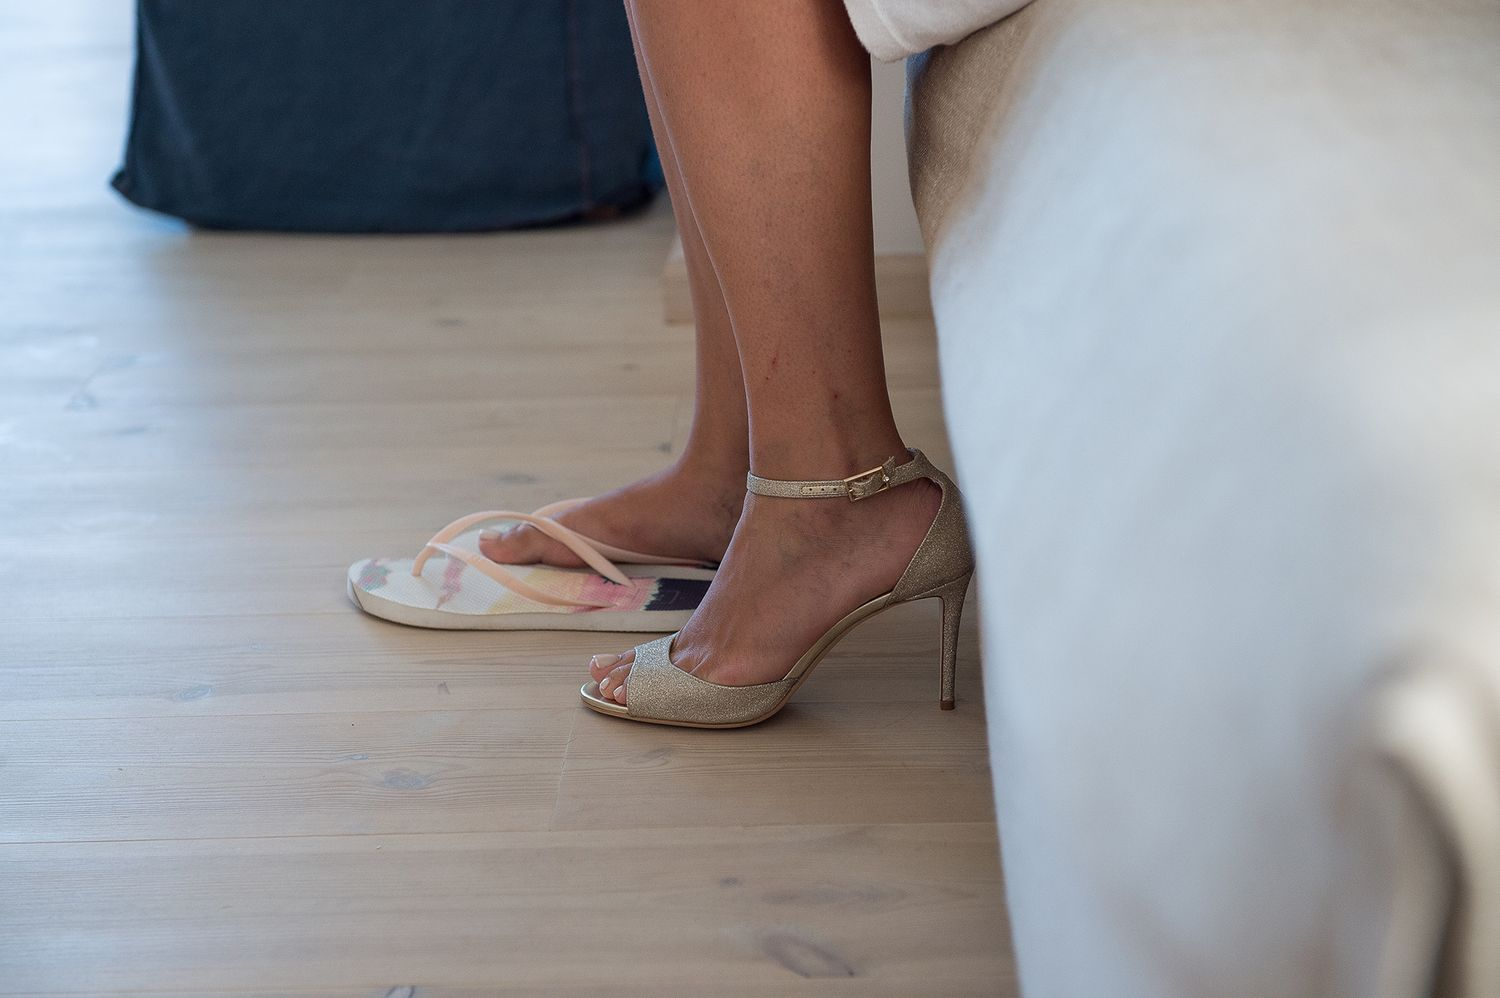 bride's foot while putting on the wedding shoes